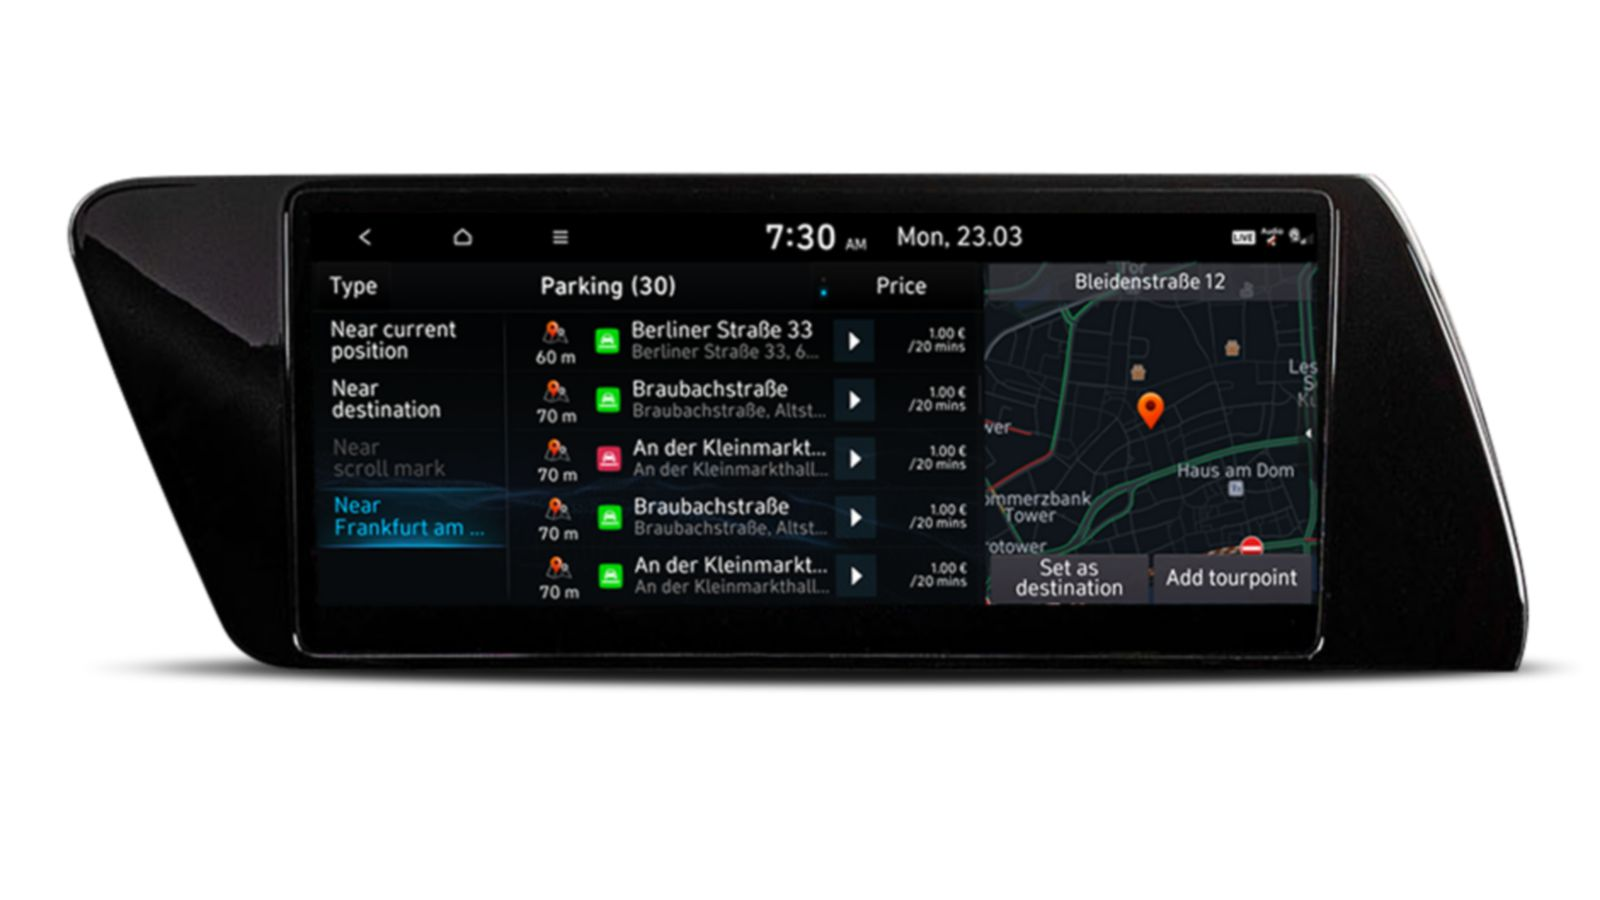 Image of the 10.25-inch screen of the new Hyundai i20, showing on and off-street parking information.